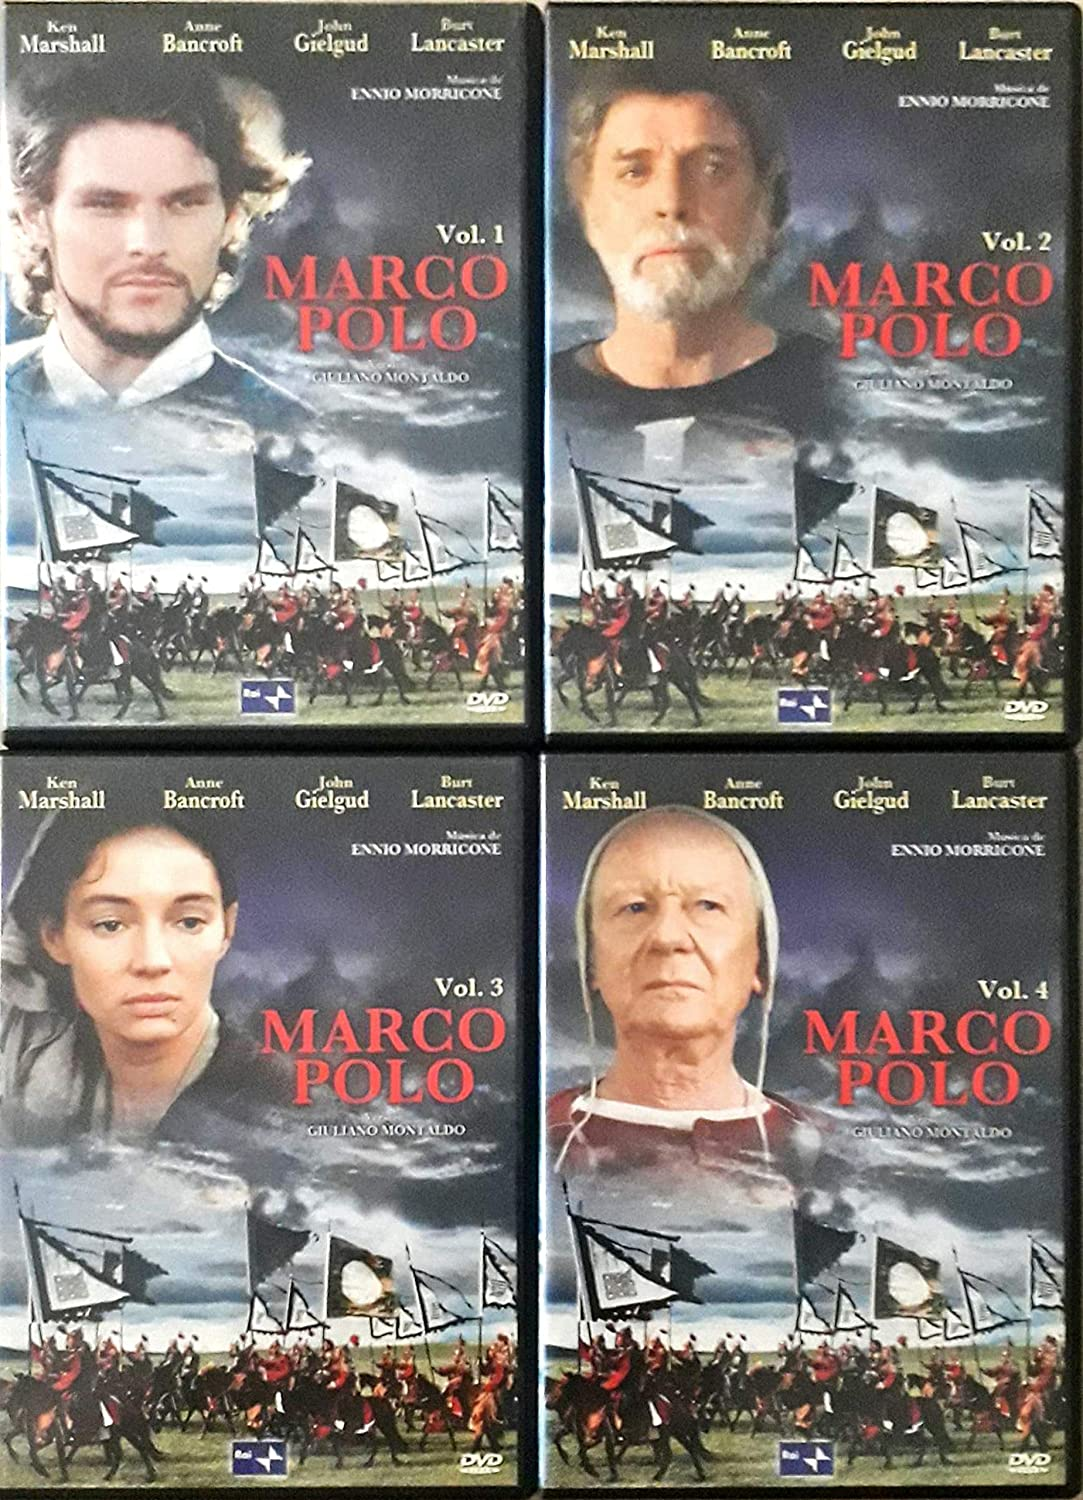 Marco Polo (Miniserie de TV) Vol 1,2,3 y 4: Amazon.es: Burt ...